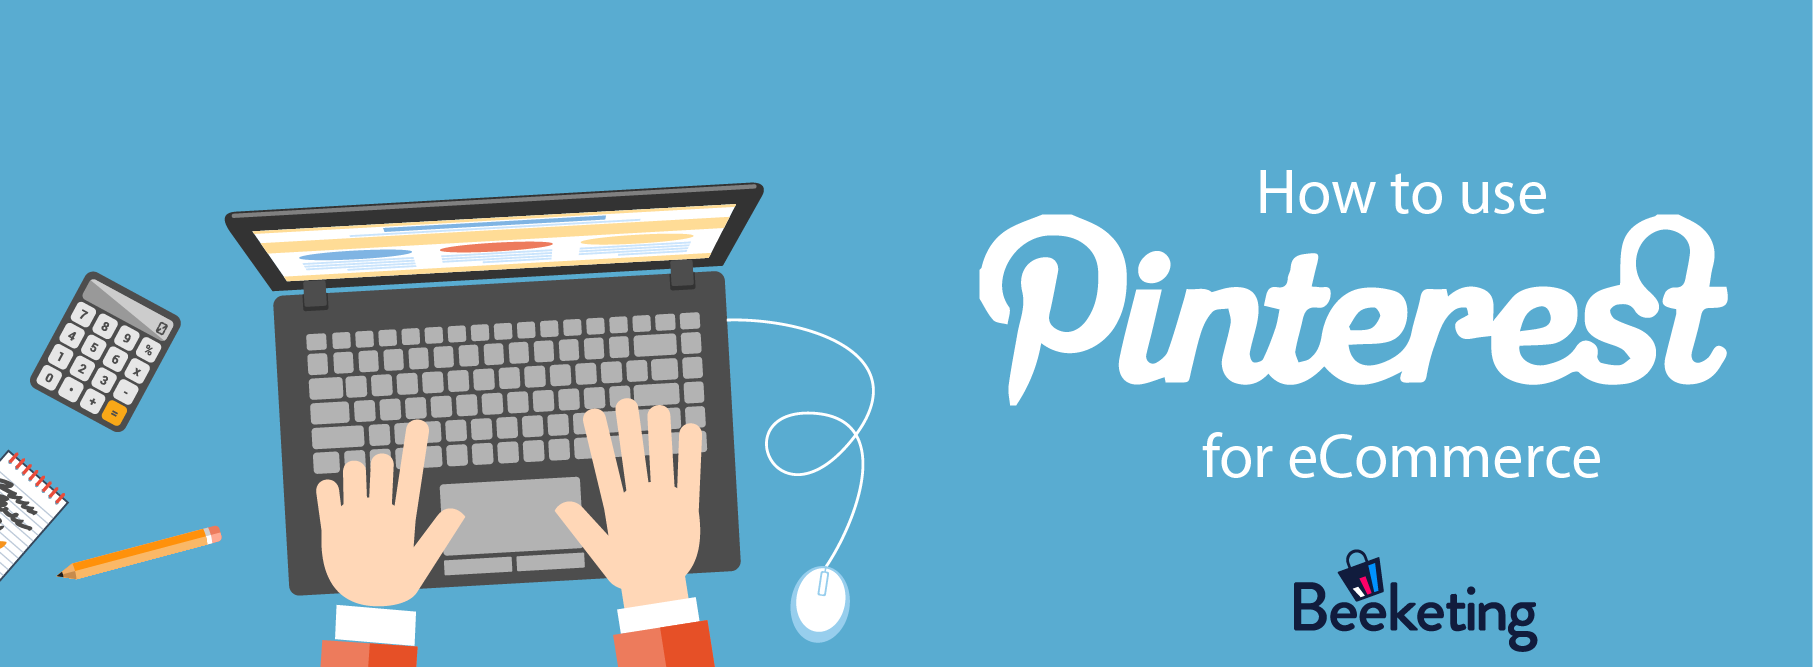 pinterest for ecommerce